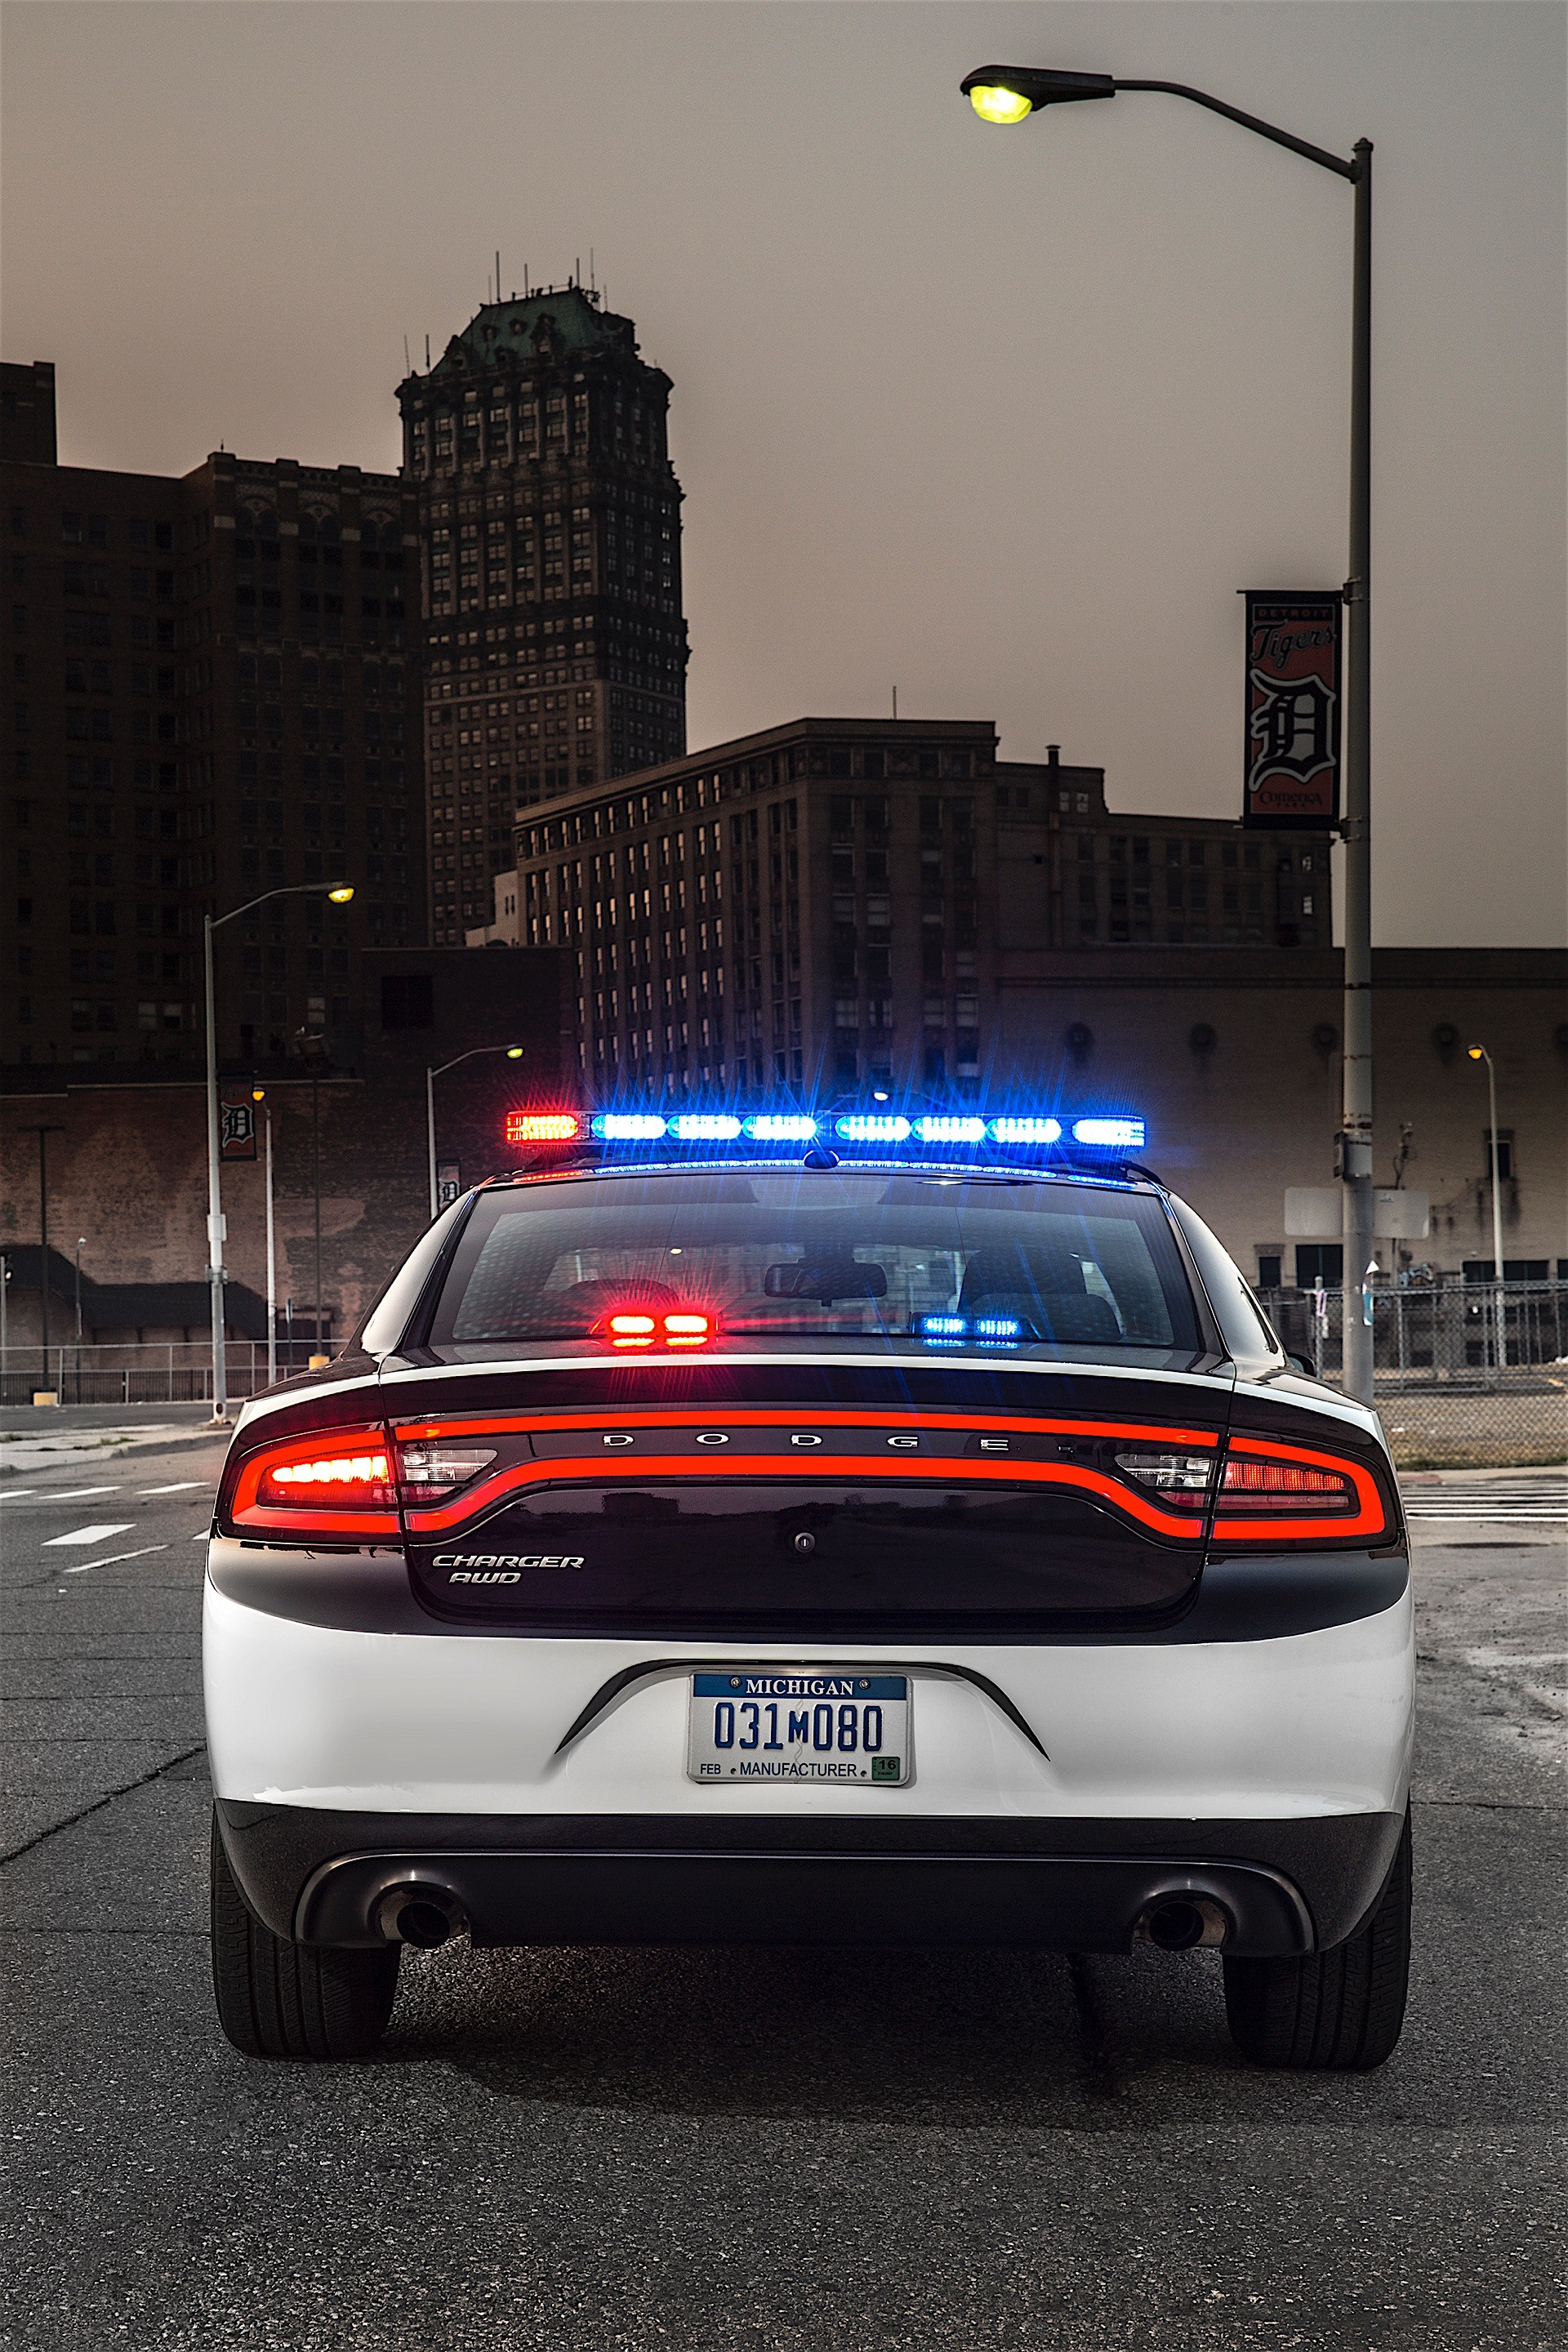 California Highway Patrol Orders Dodge Charger Pursuit Police Sedans For Its Sta on 2008 Dodge Challenger